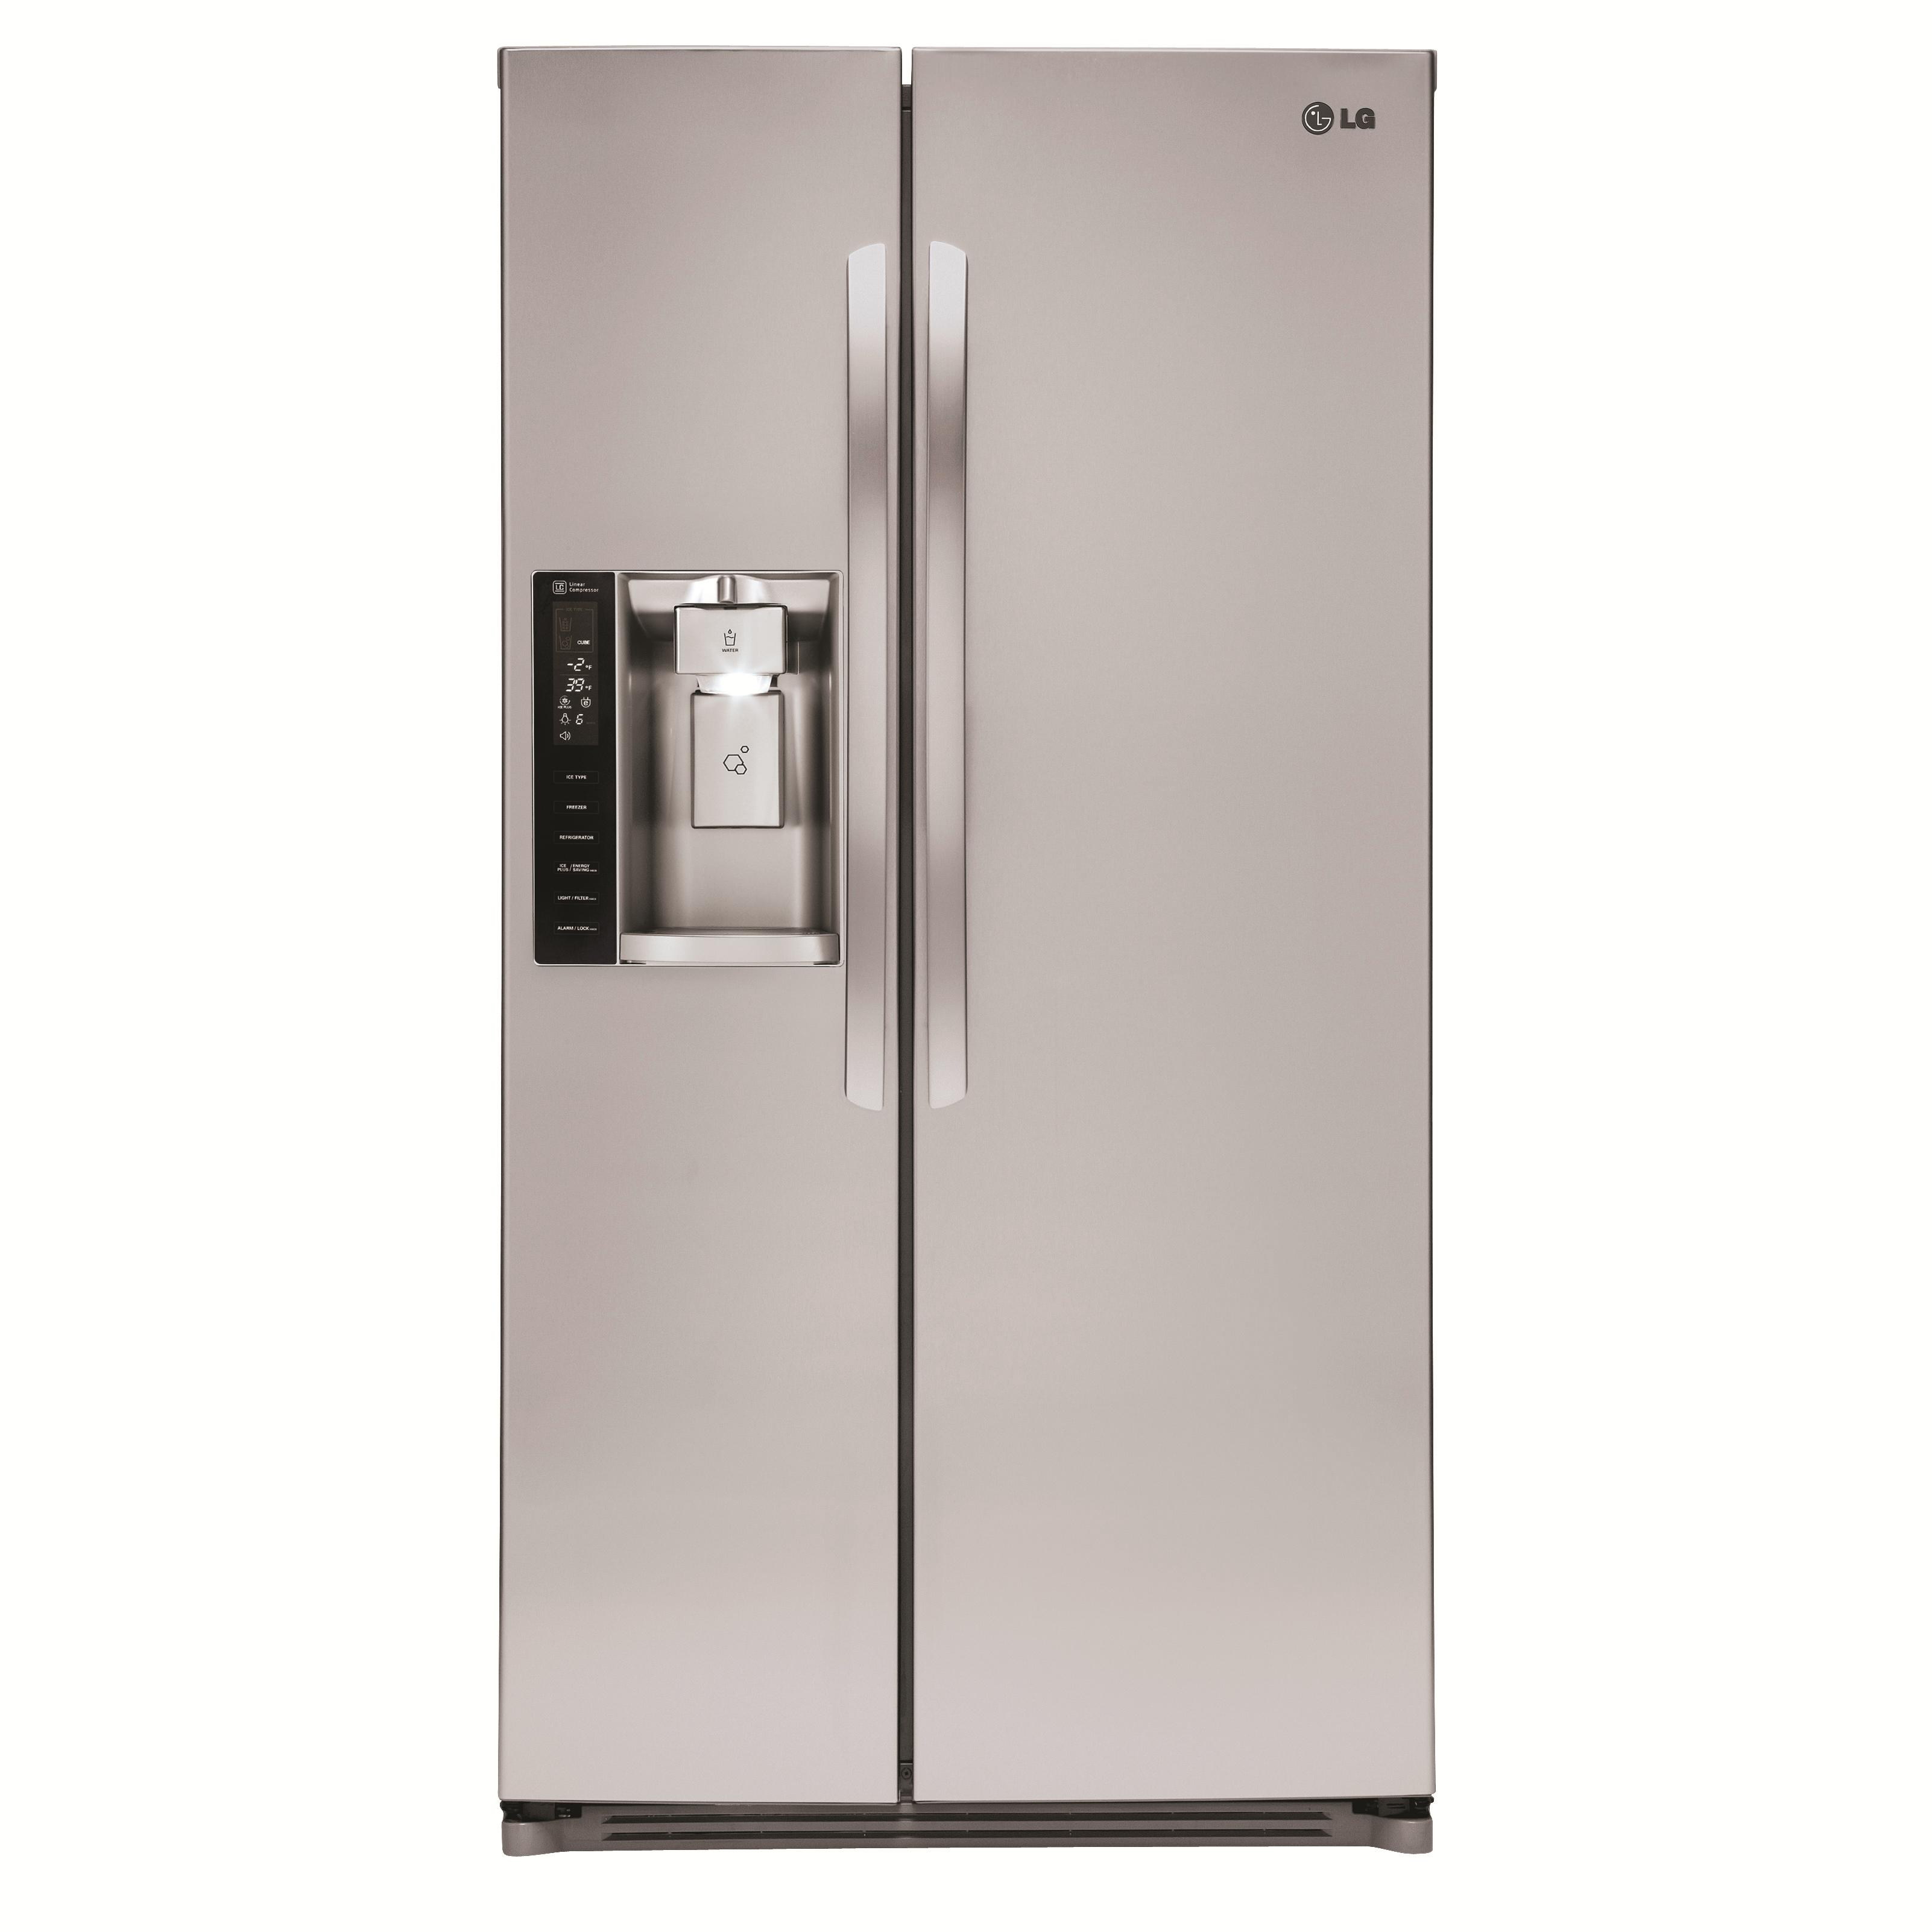 Lg Appliances 26 Cu Ft Side By Side Refrigerator With